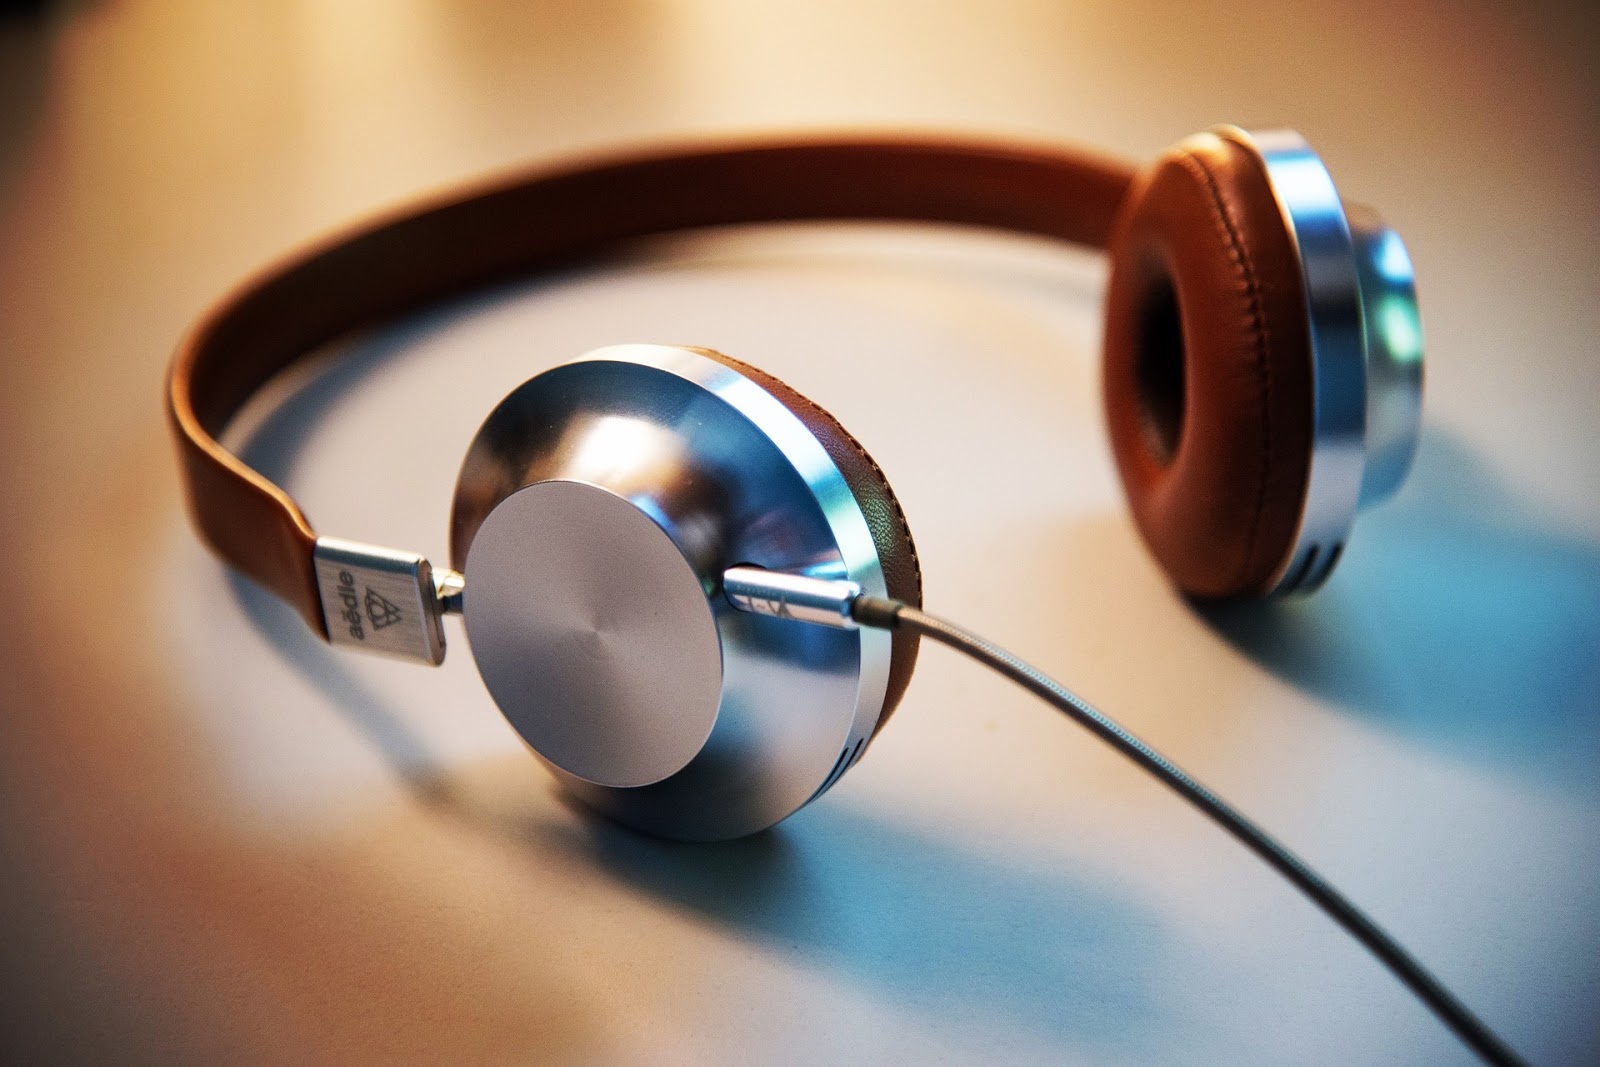 (What Kind of Music Best Fits Your Condo Playlist. Source: Pixabay)